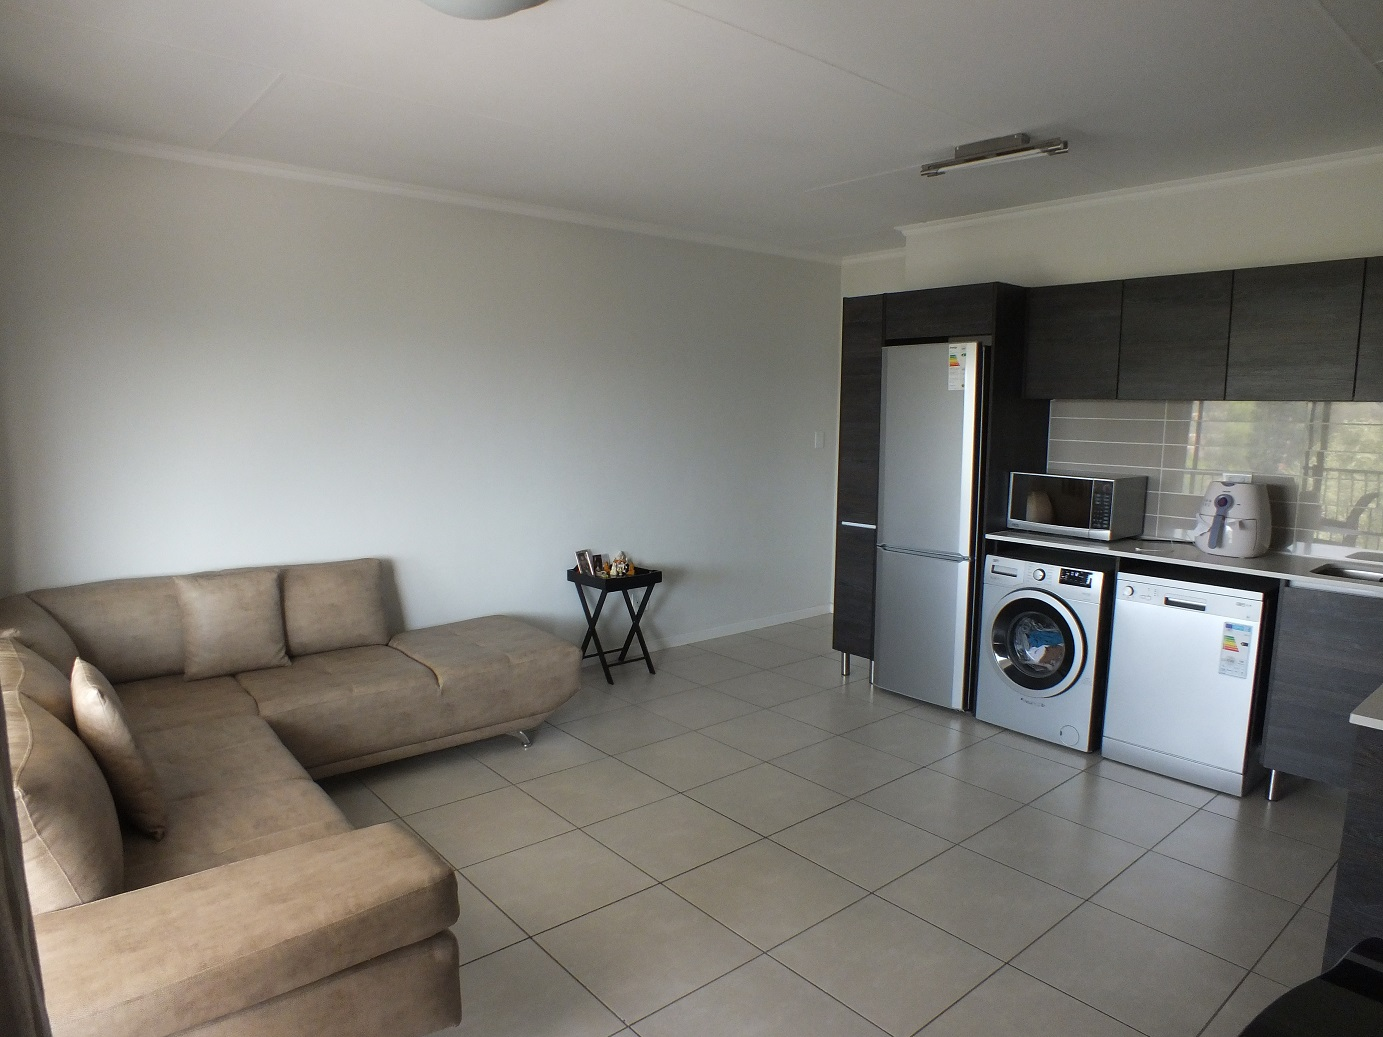 1 Bedroom Apartment for sale in Bryanston ENT0067747 : photo#2